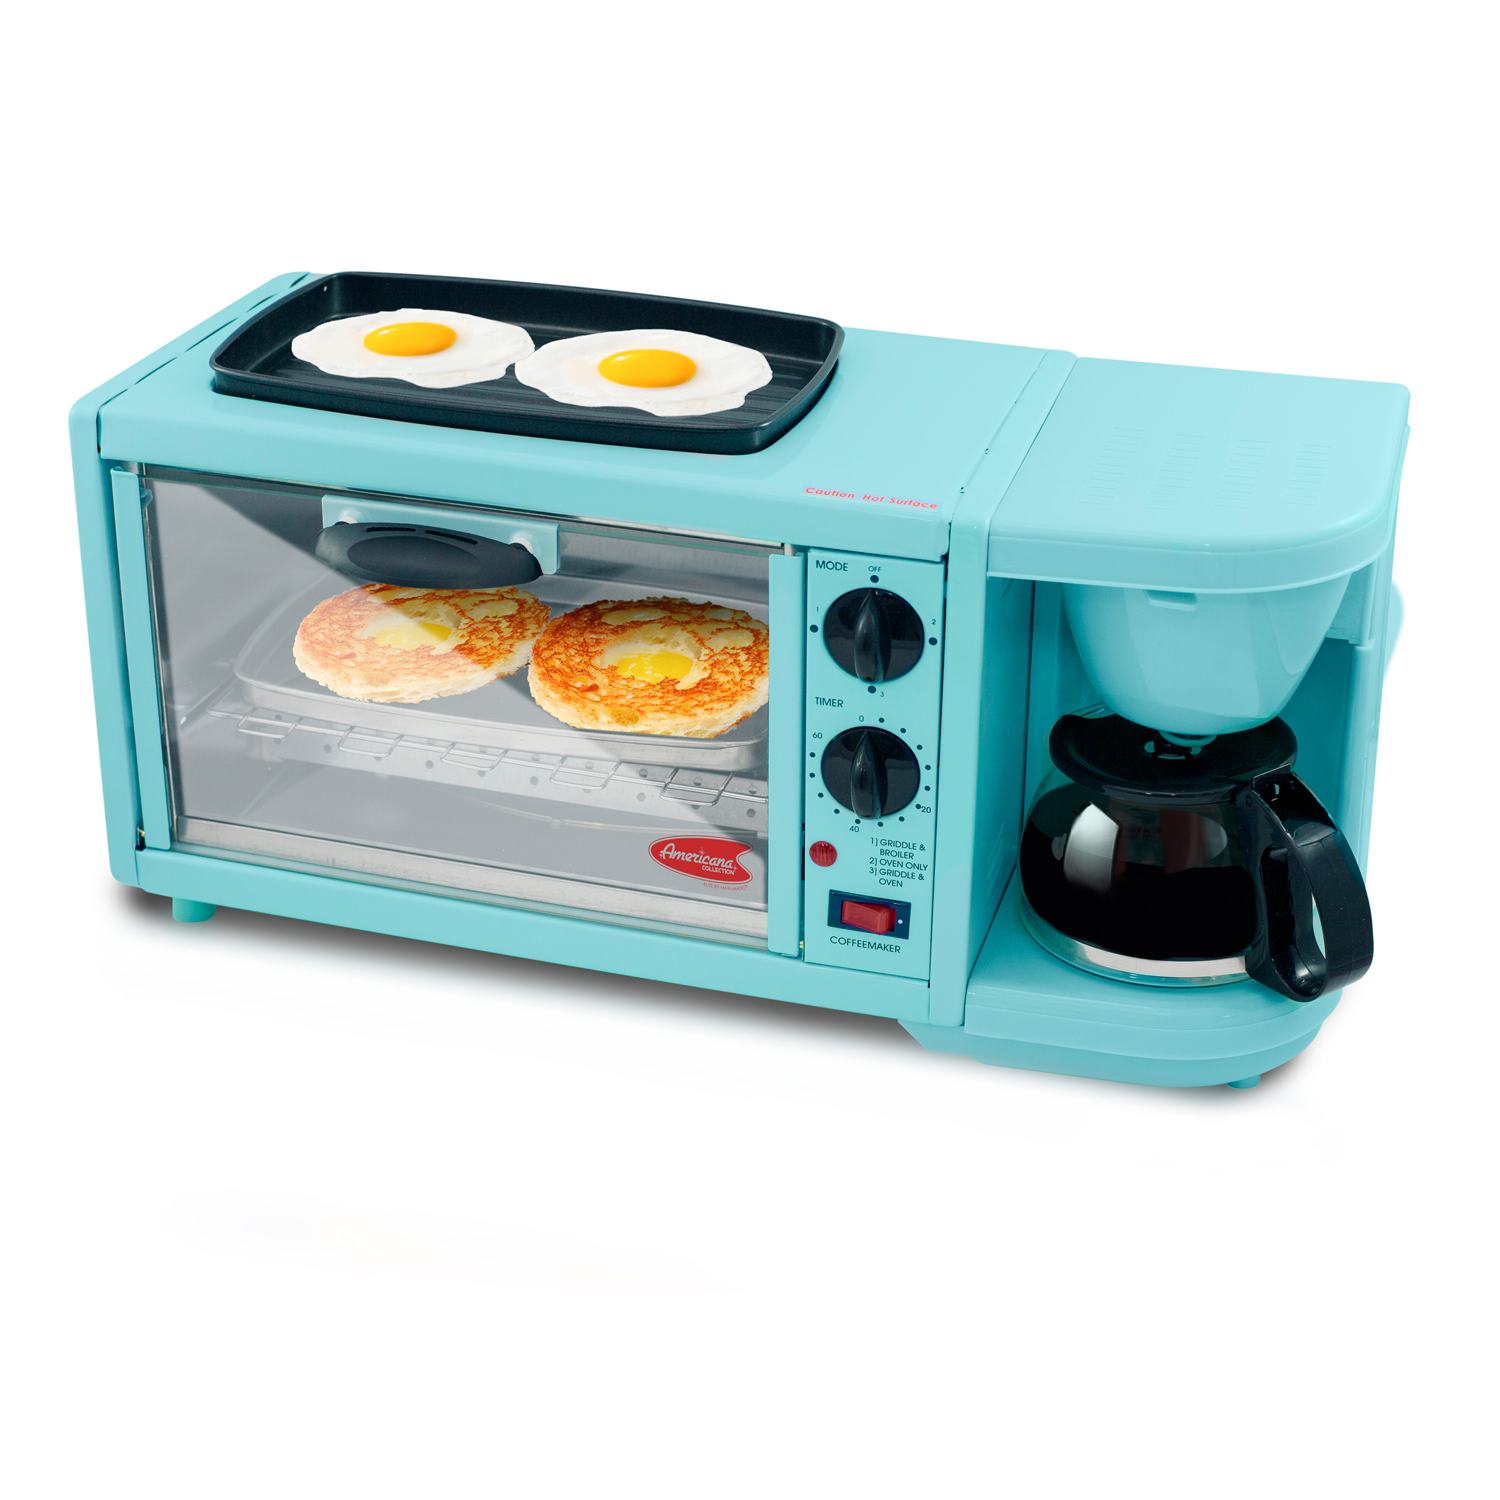 Americana by Elite 3 in 1 Extra Large Breakfast Center, Coffee, Toaster Oven, Griddle, Blue by Maxi Matic USA